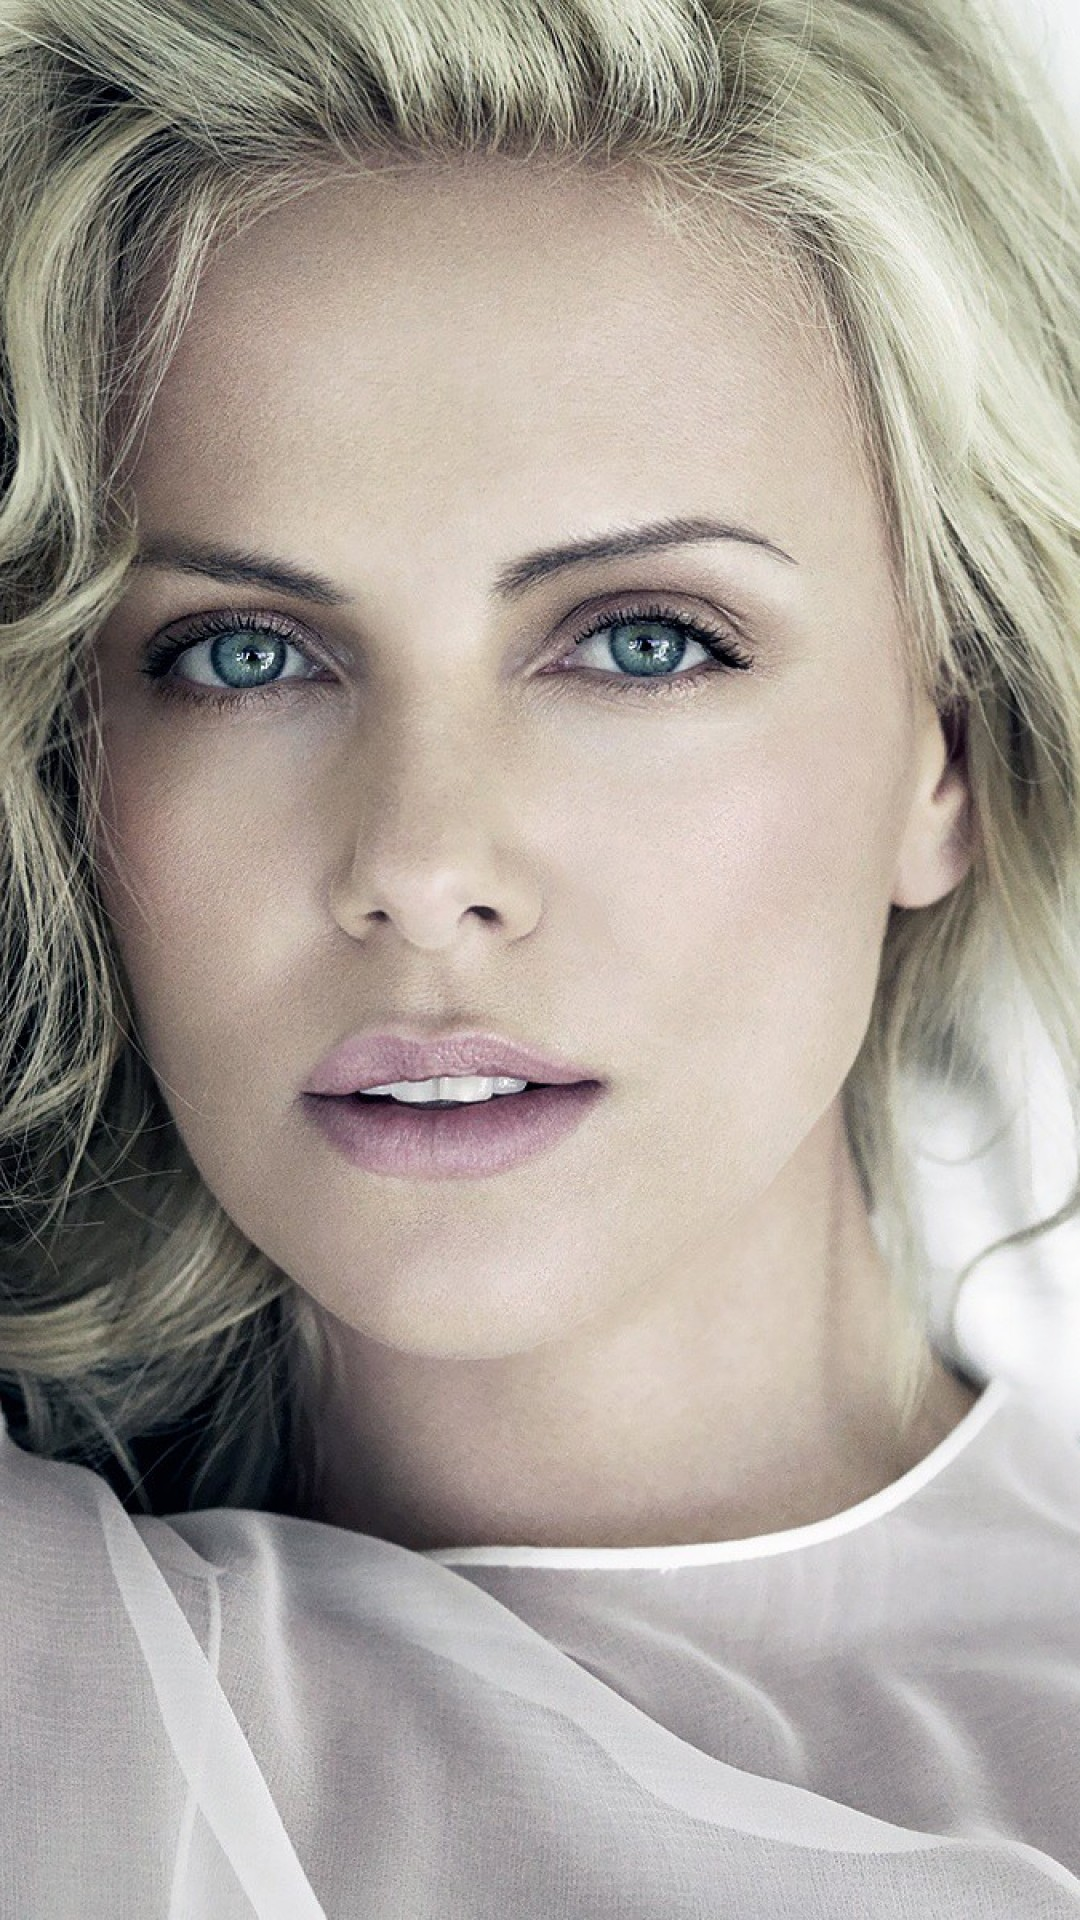 1080x1920 - Charlize Theron Wallpapers 11